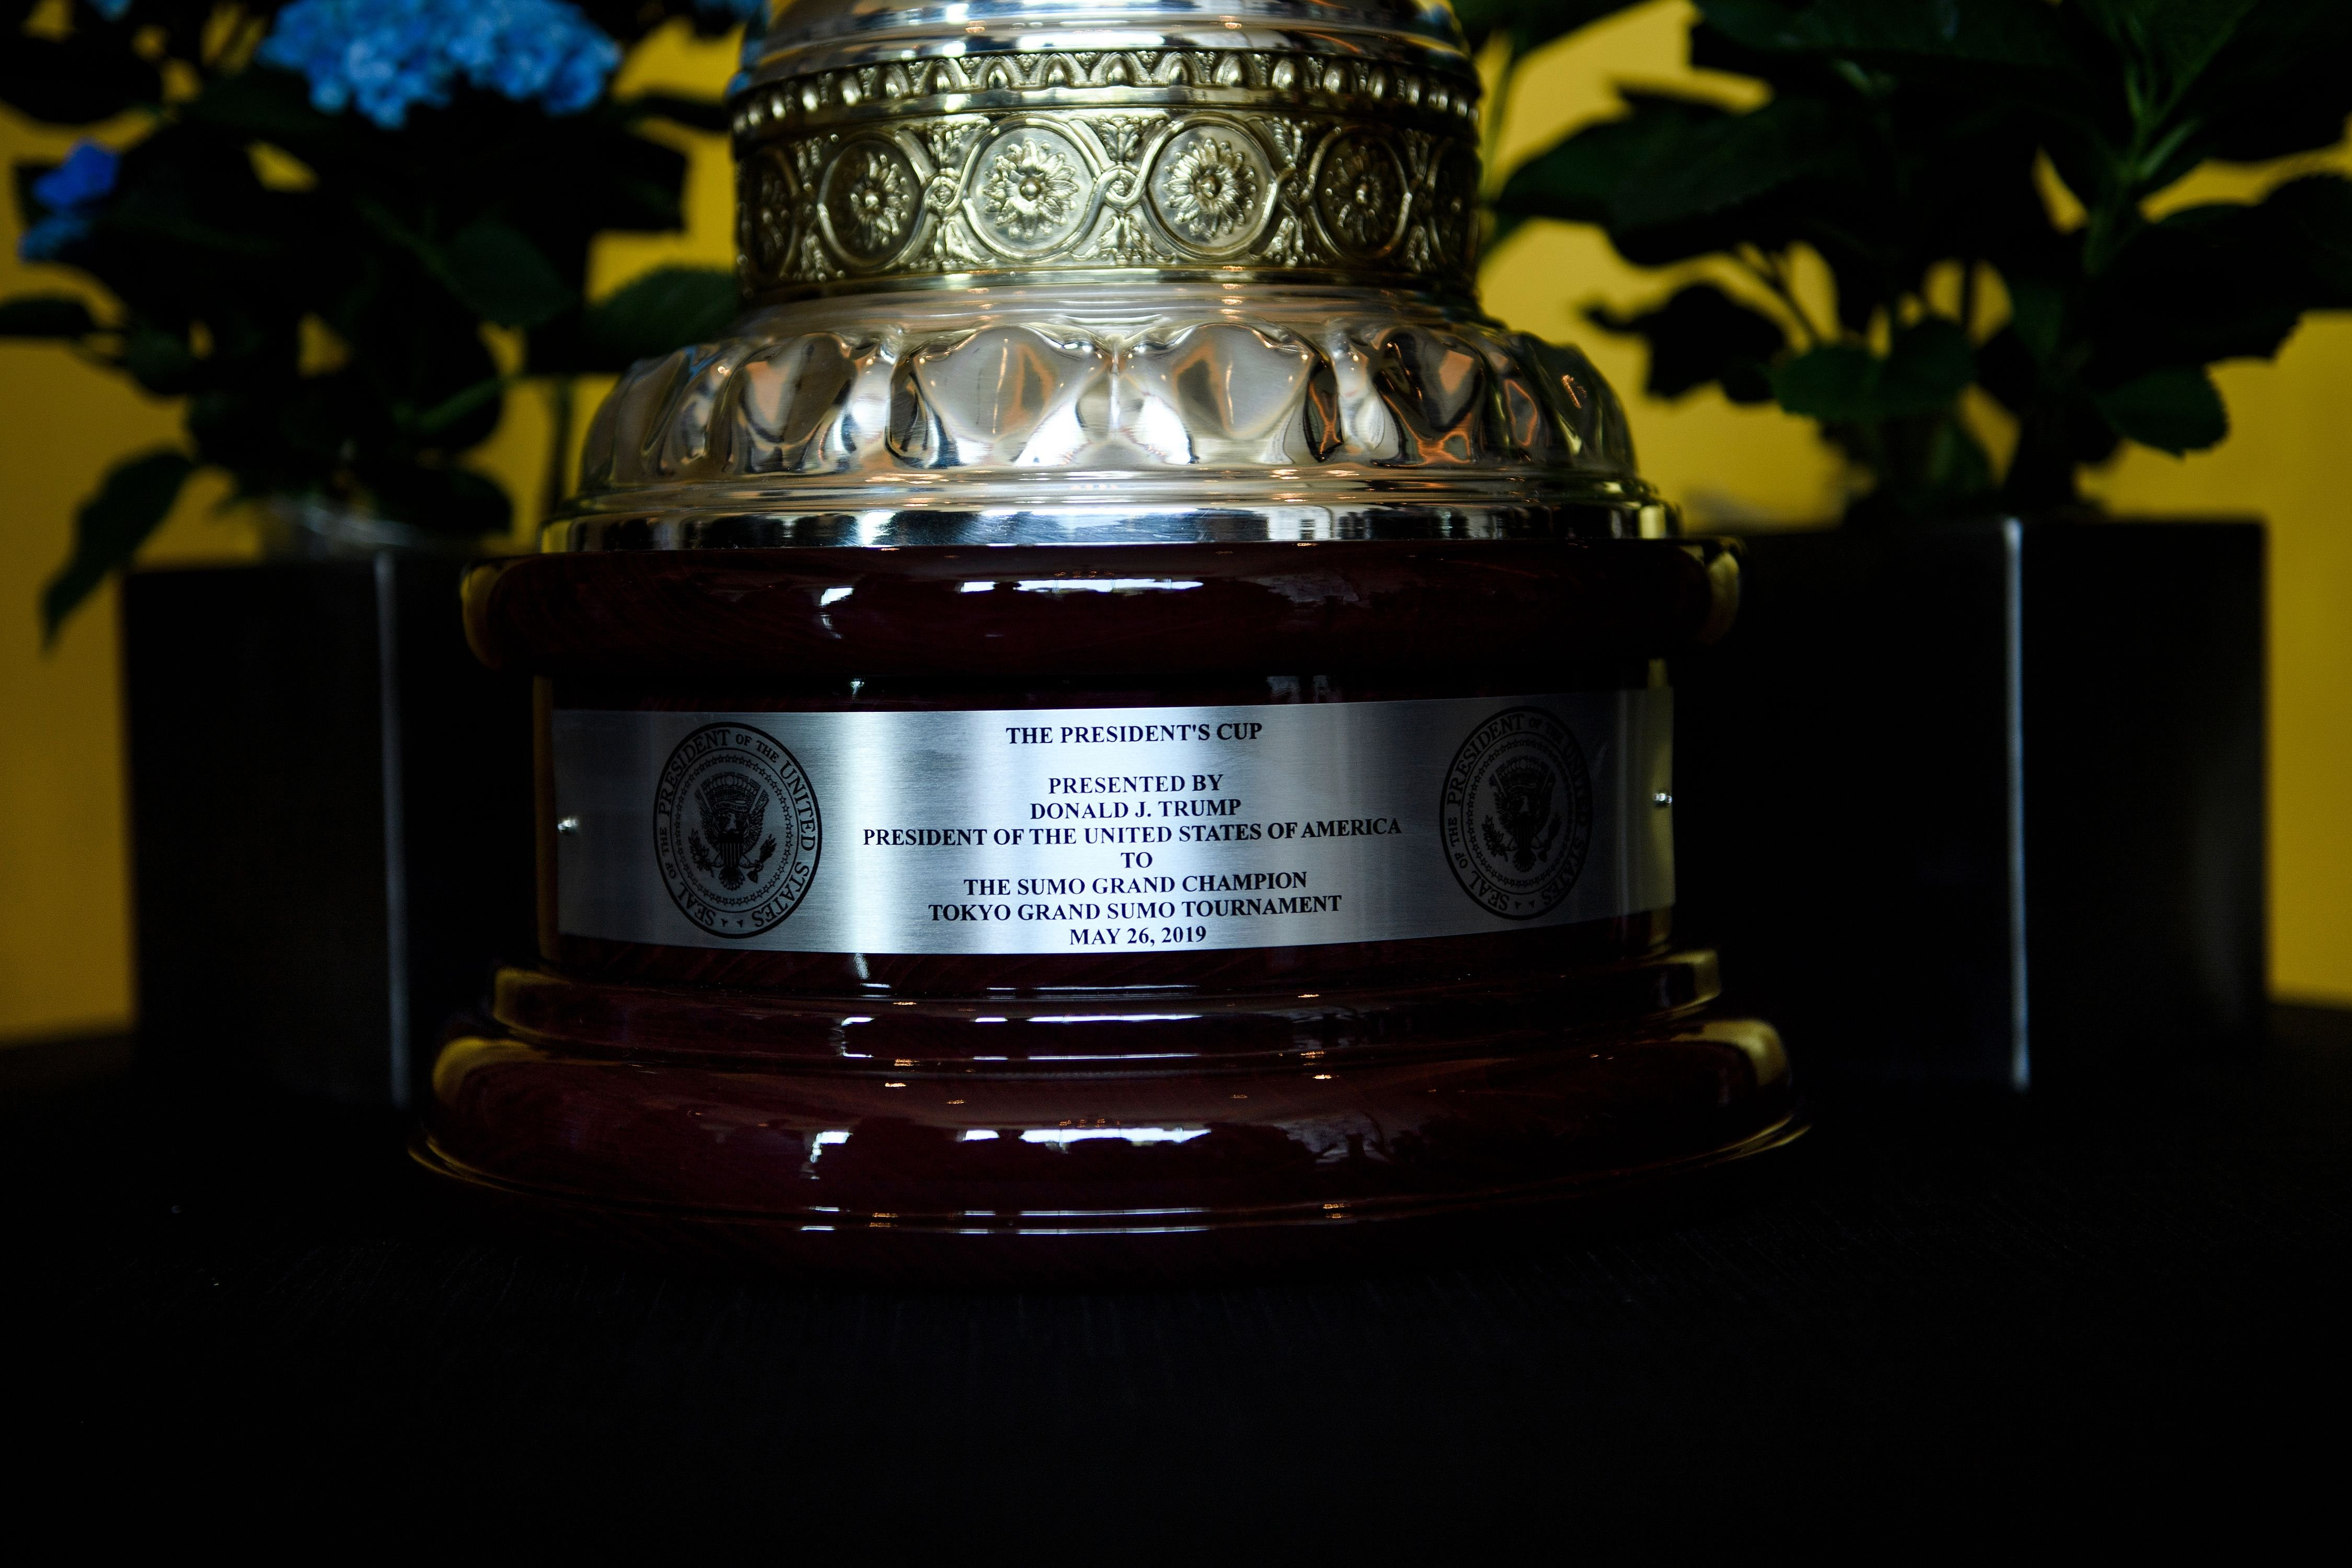 The President's Cup, which will be awarded to sumo wrestler Asanoyama by US President Donald Trump during the Summer Grand Sumo Tournament, is kept on display at Palace Hotel in Tokyo on May 26, 2019. (Photo by BRENDAN SMIALOWSKI/AFP/Getty Images)